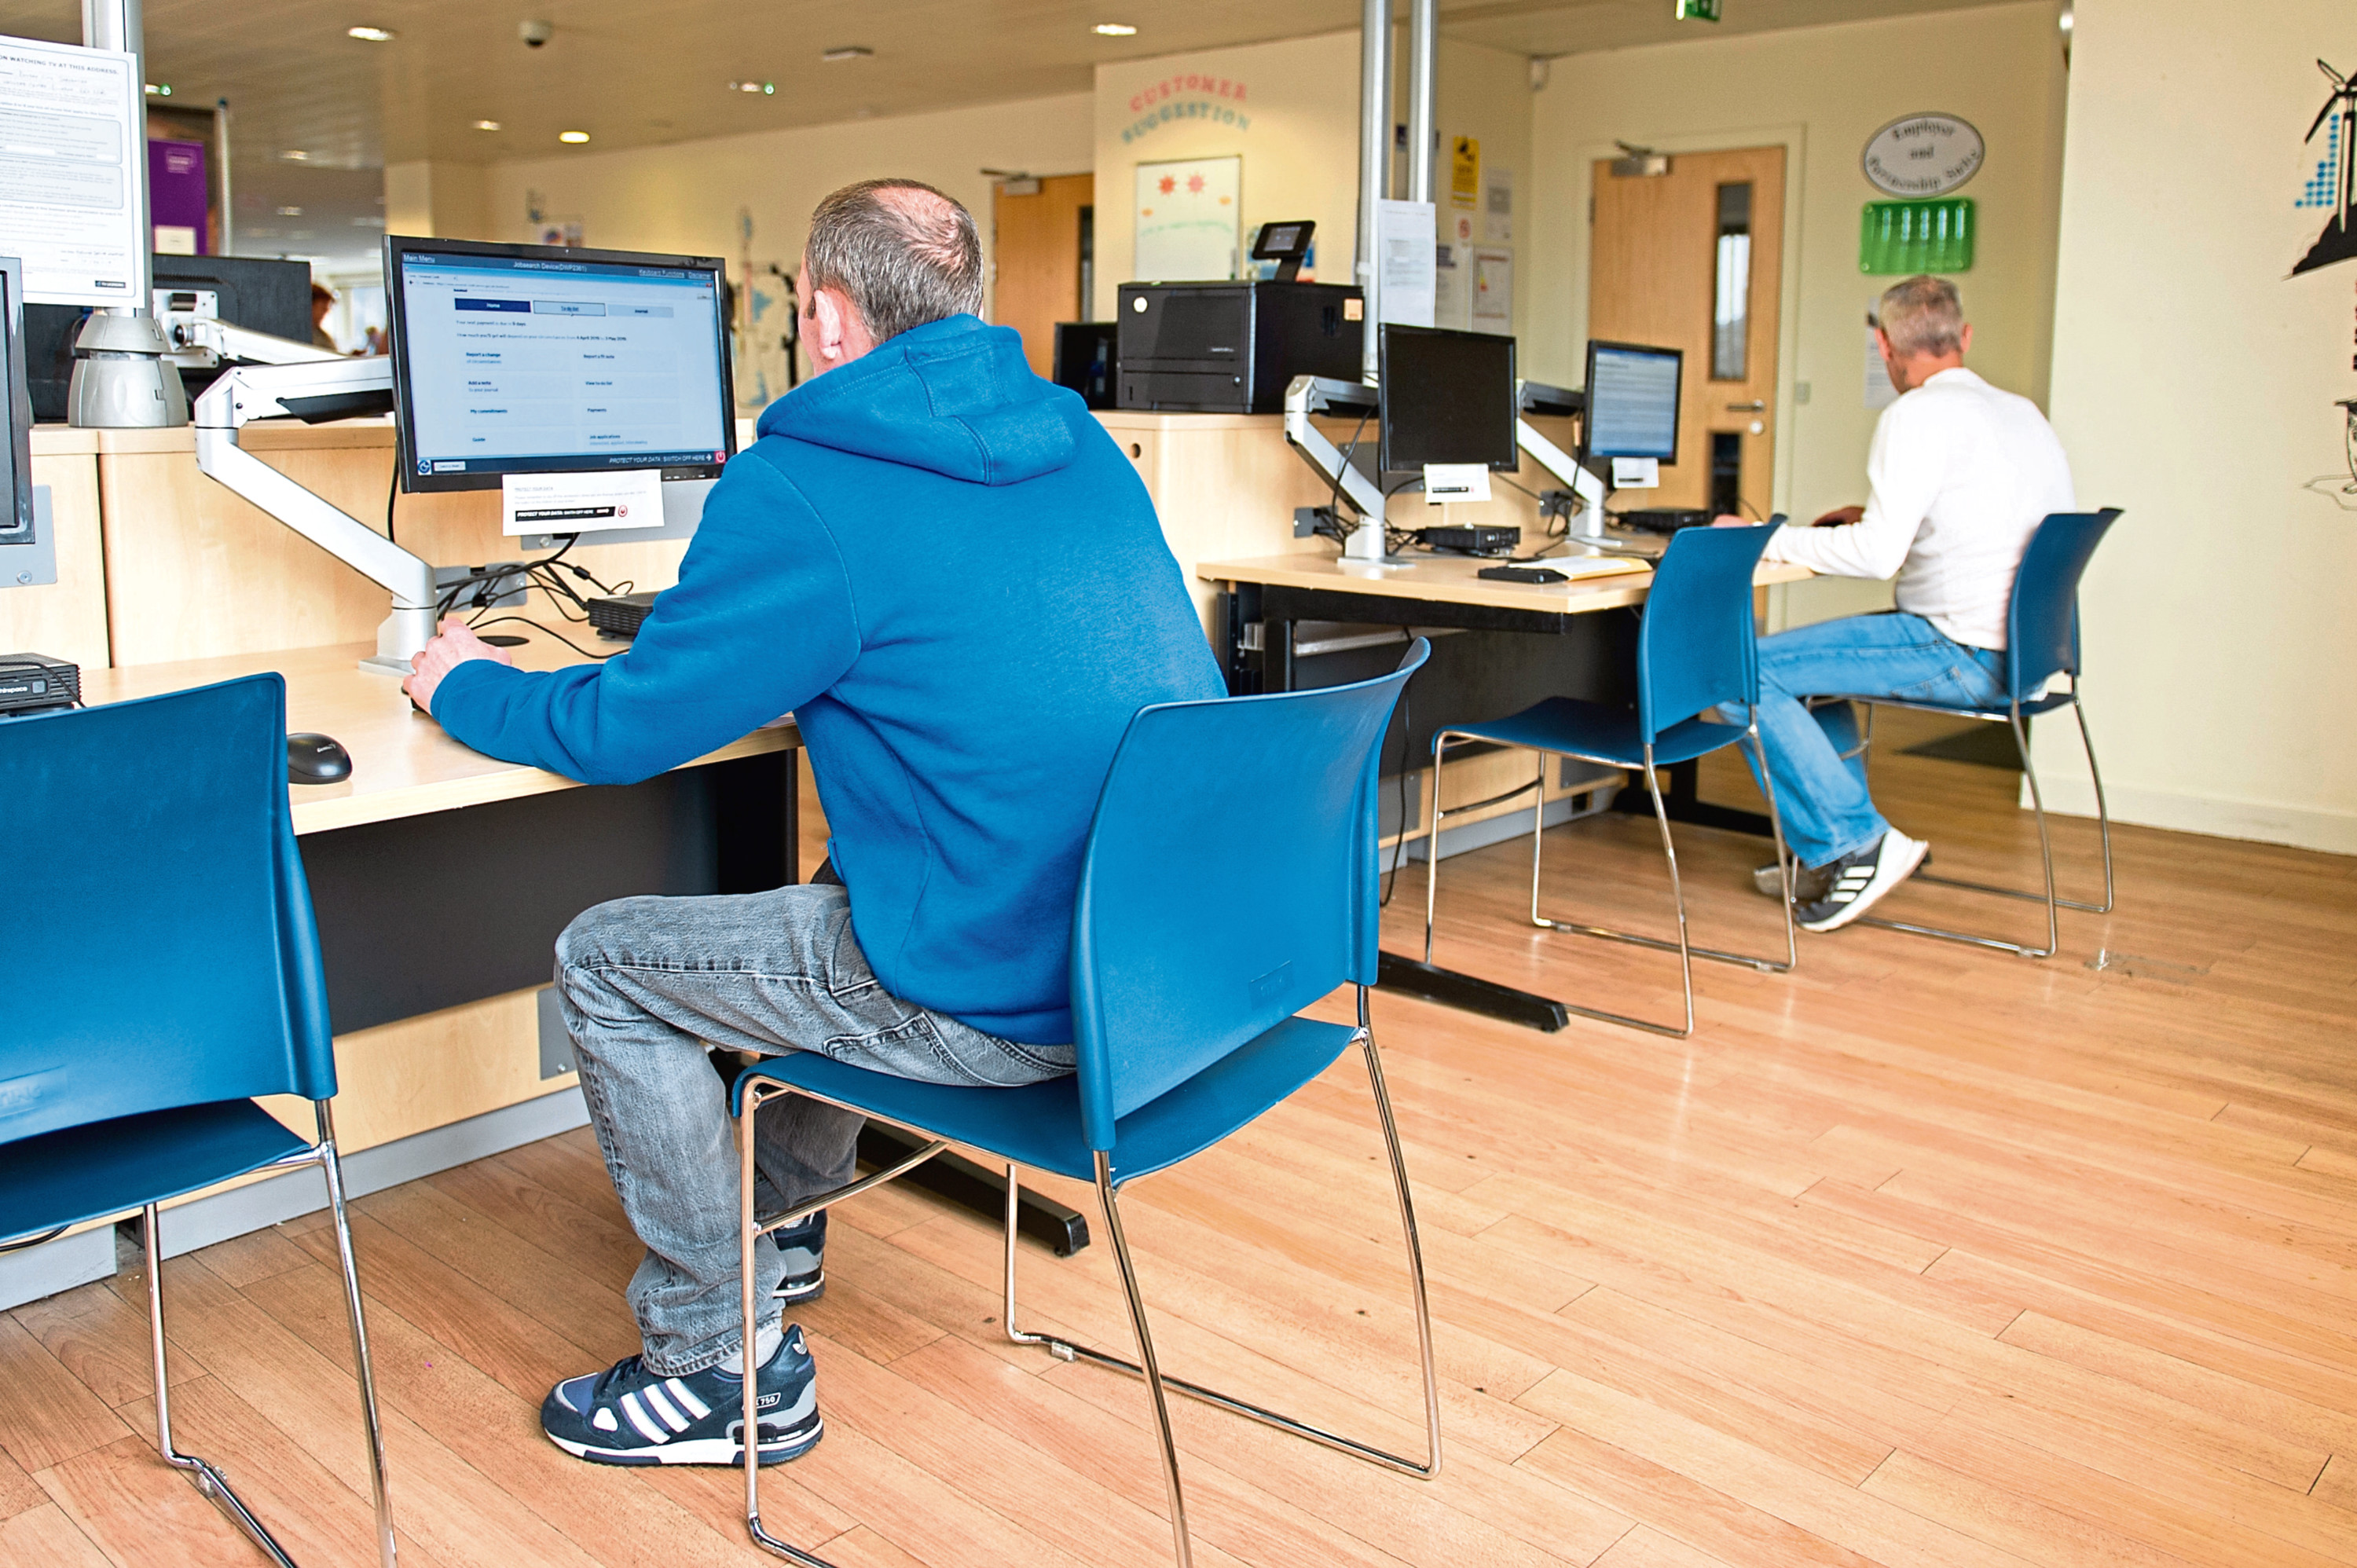 Digital training is to be offered by the Department for Work and Pensions.